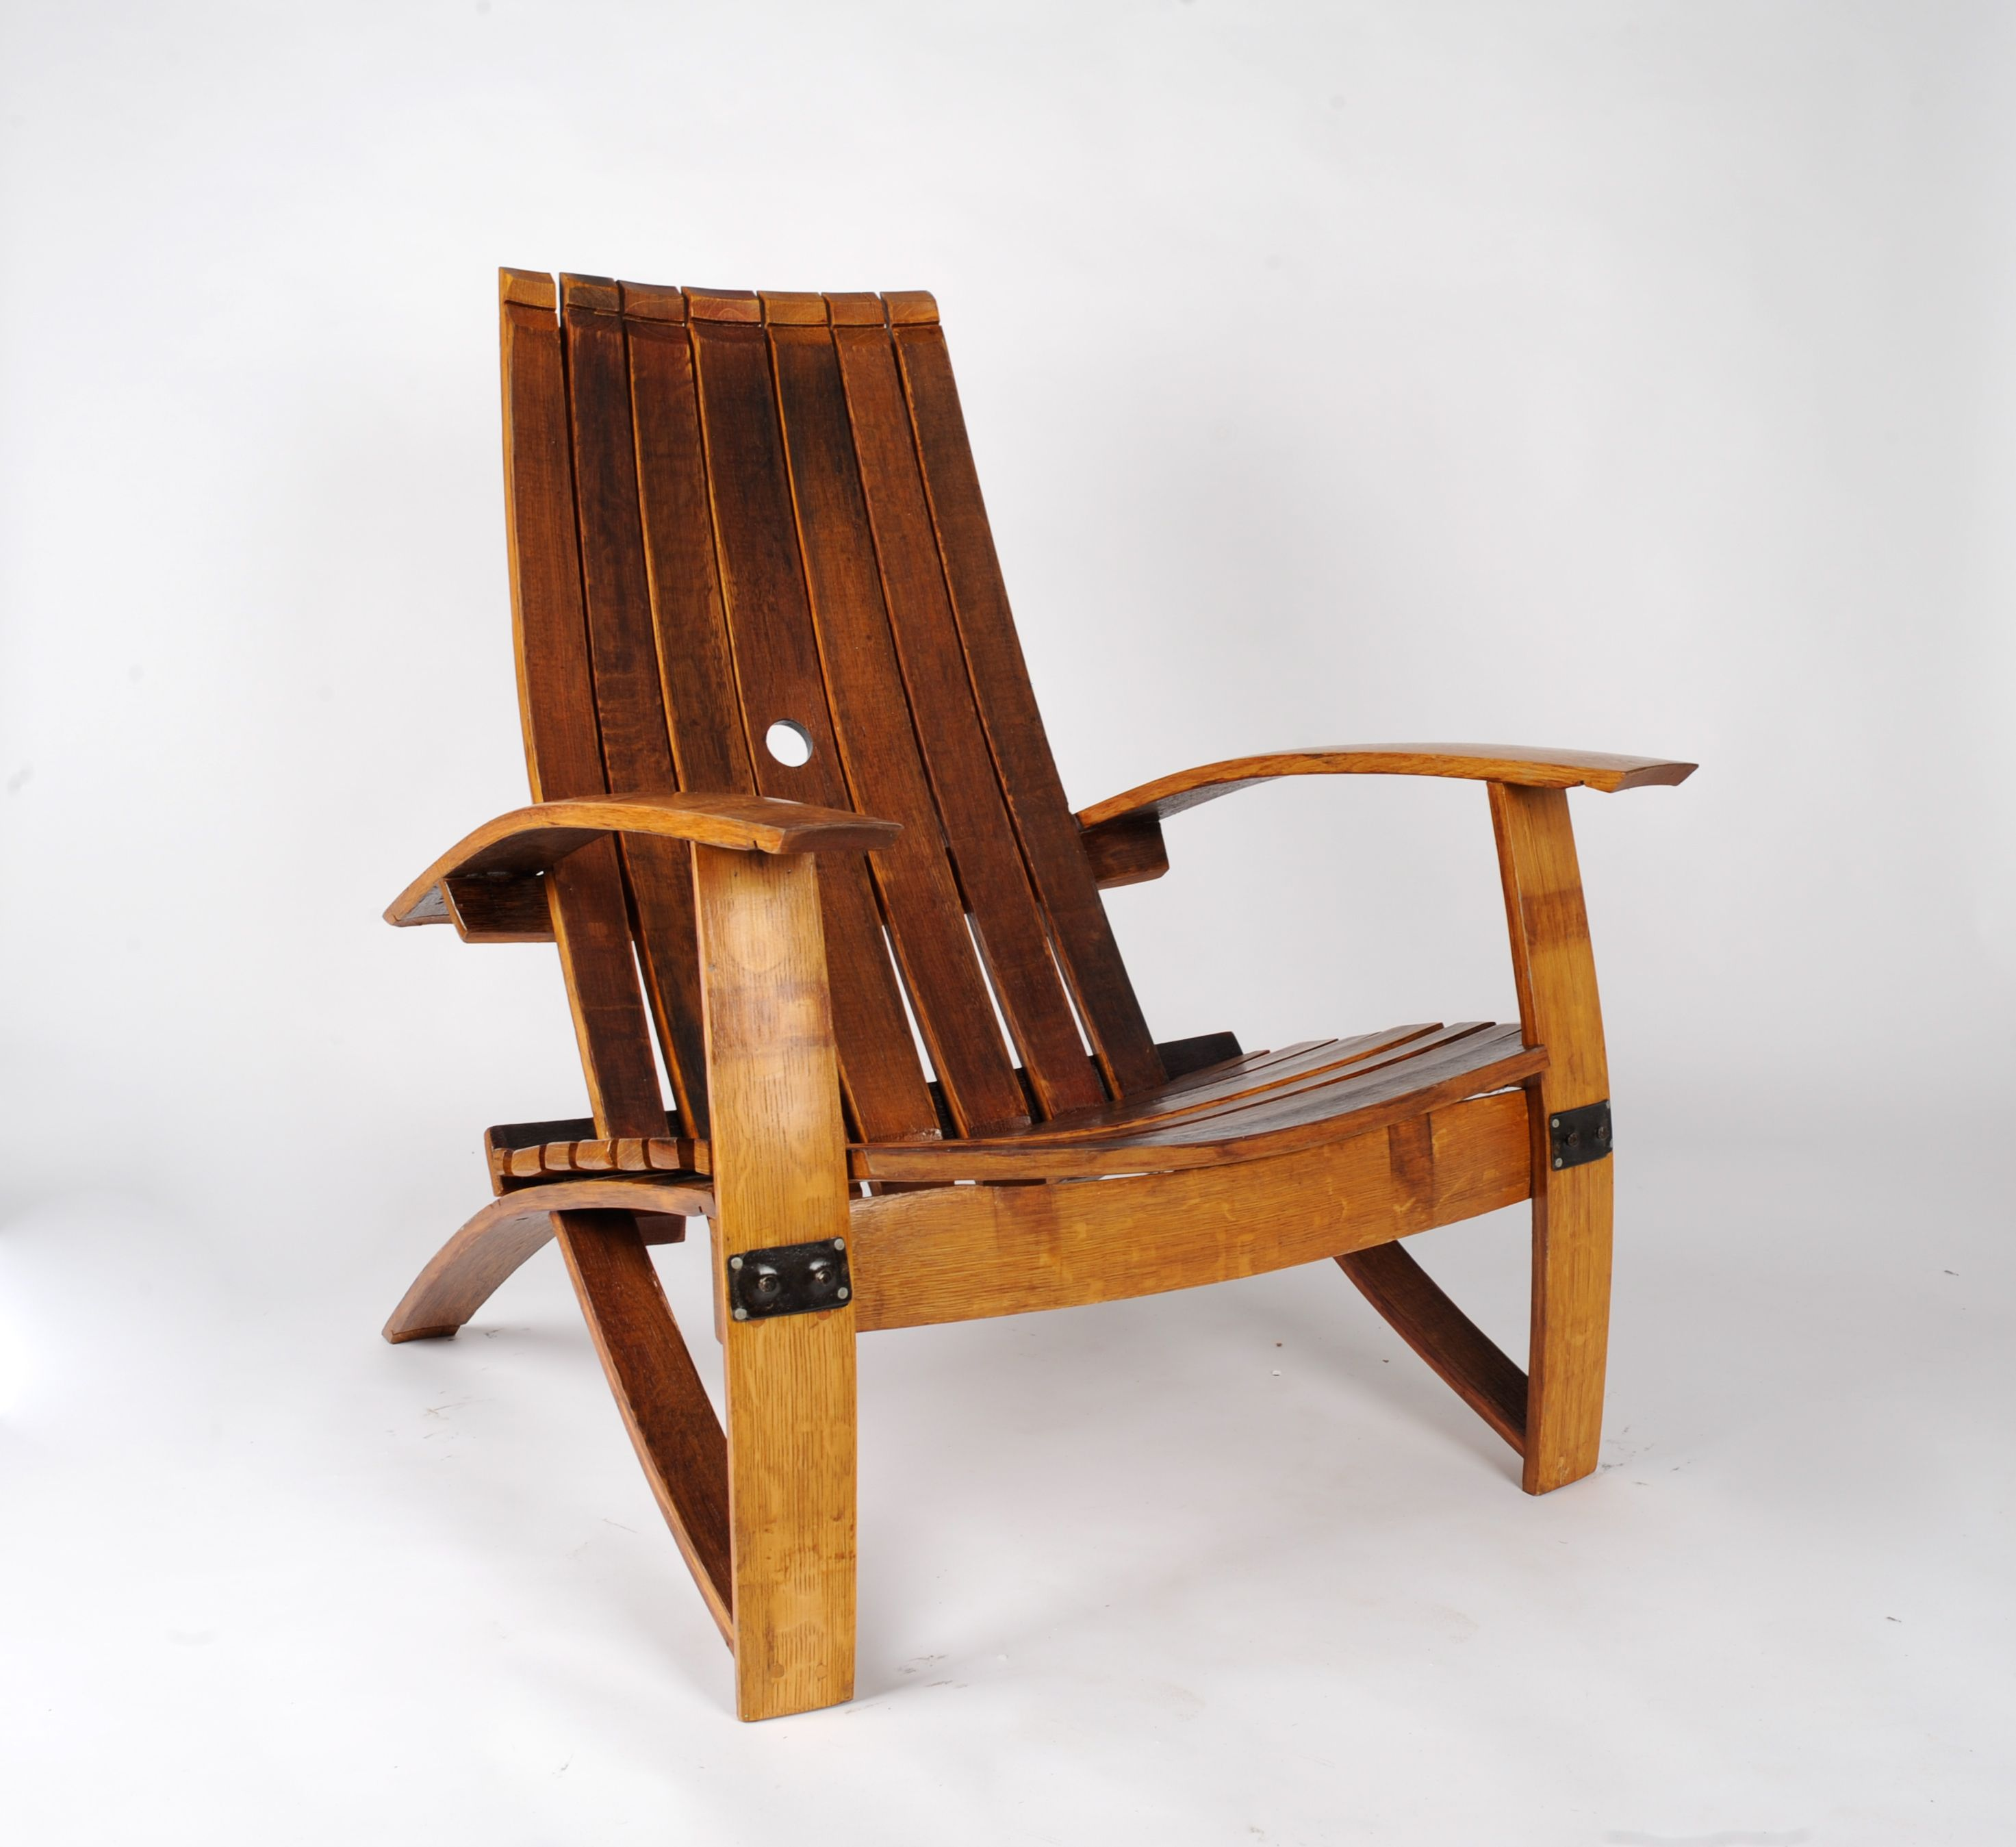 Buy A Hand Made White Wine Barrel Chair Made To Order From Wood And